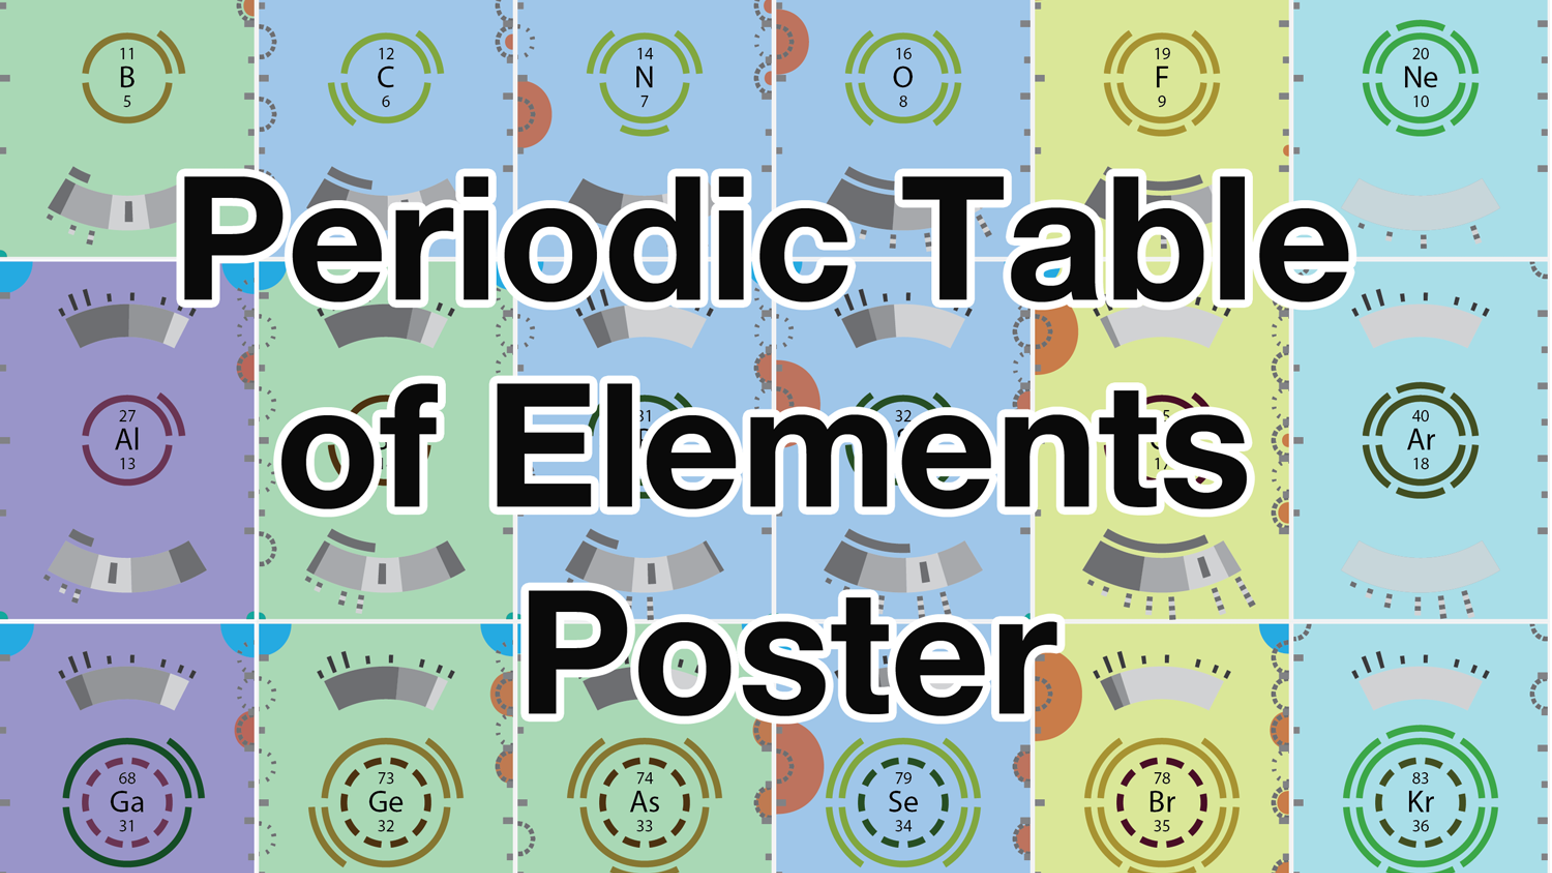 The periodic table of elements poster by sam price kickstarter a periodic table of elements that is easy to understand and visually appealing to look gamestrikefo Choice Image